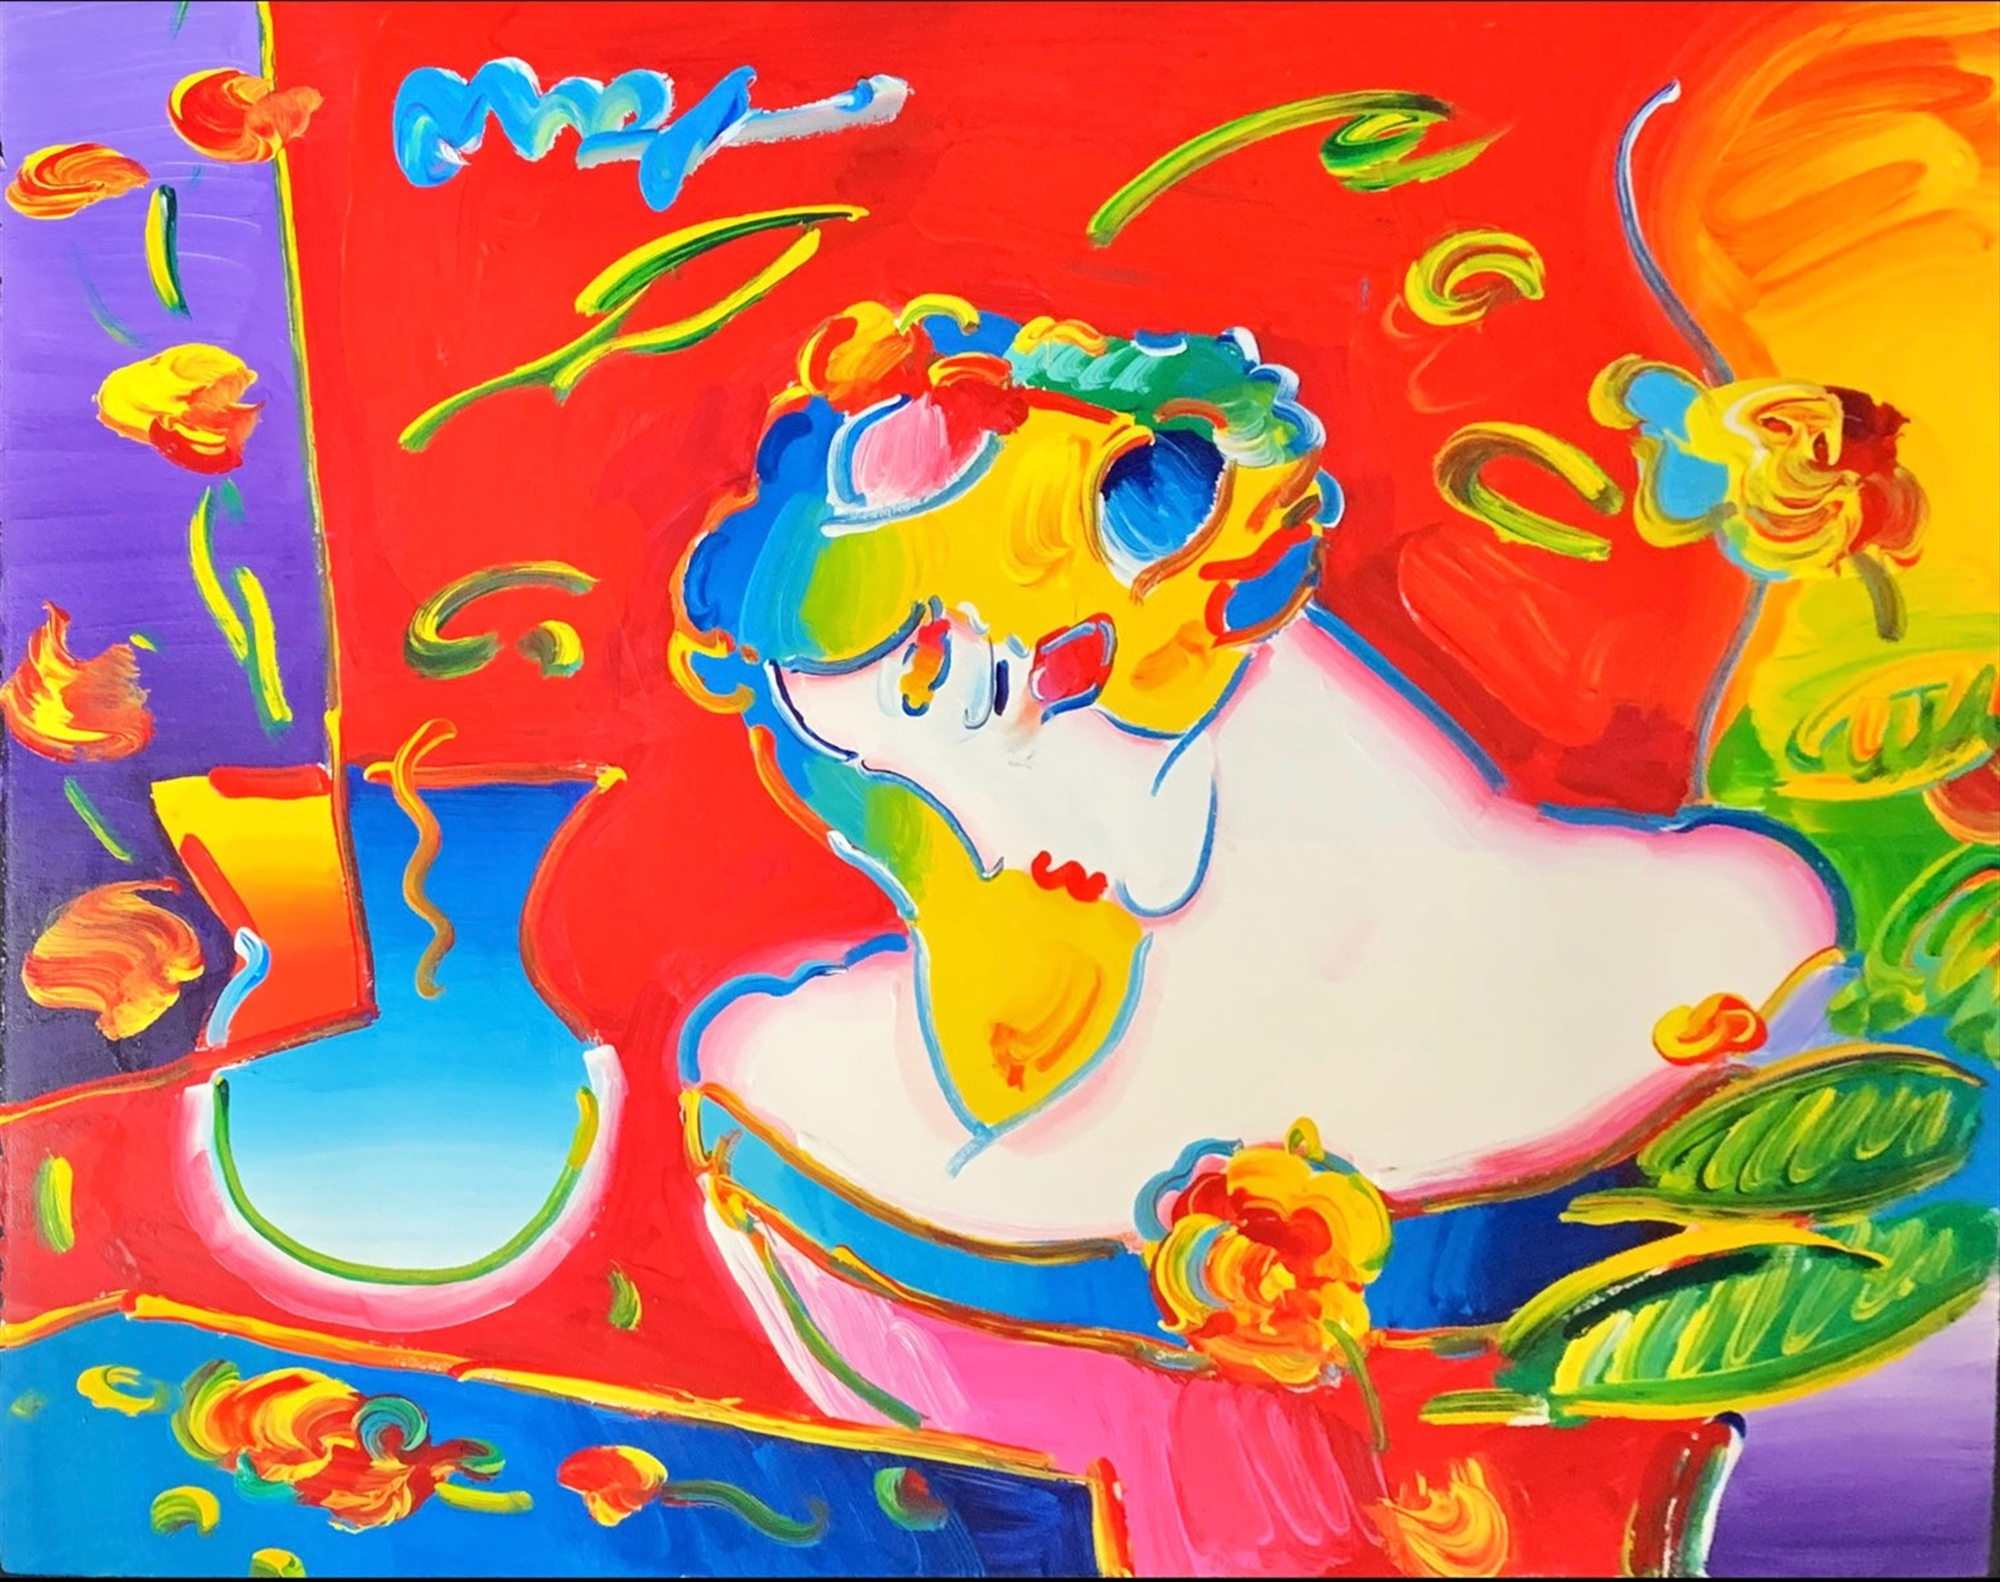 Day Dream by Peter Max